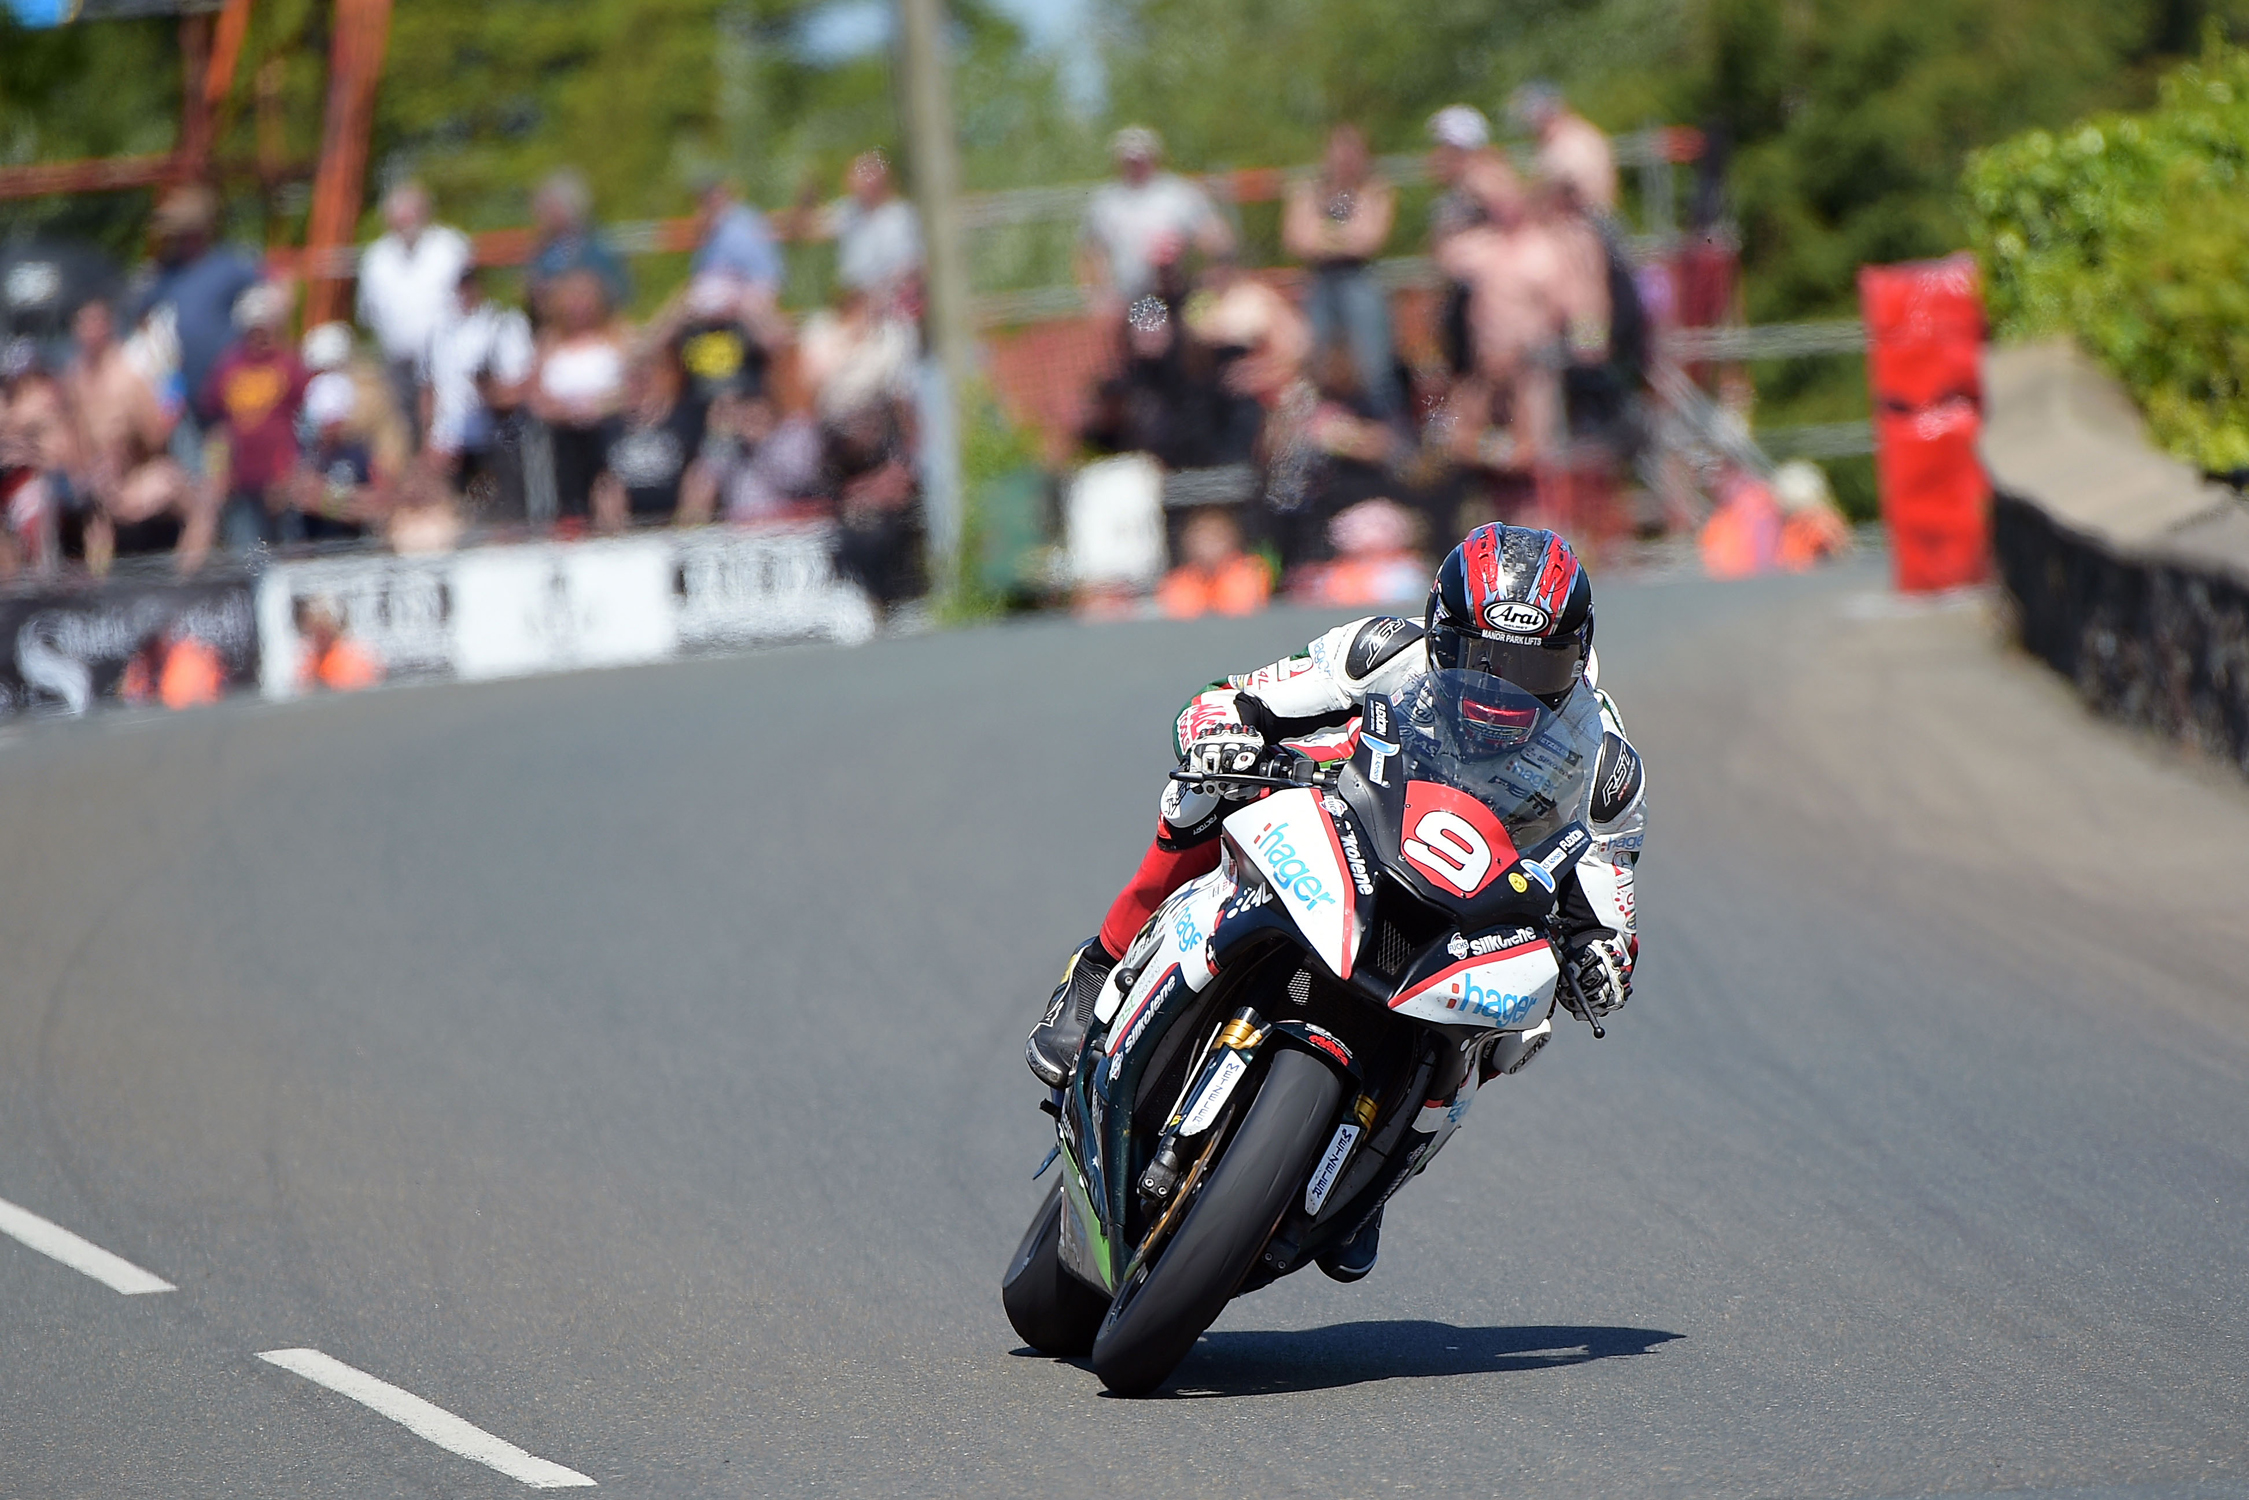 Tsubaki quality takes the lead for Isle of Man TT riders